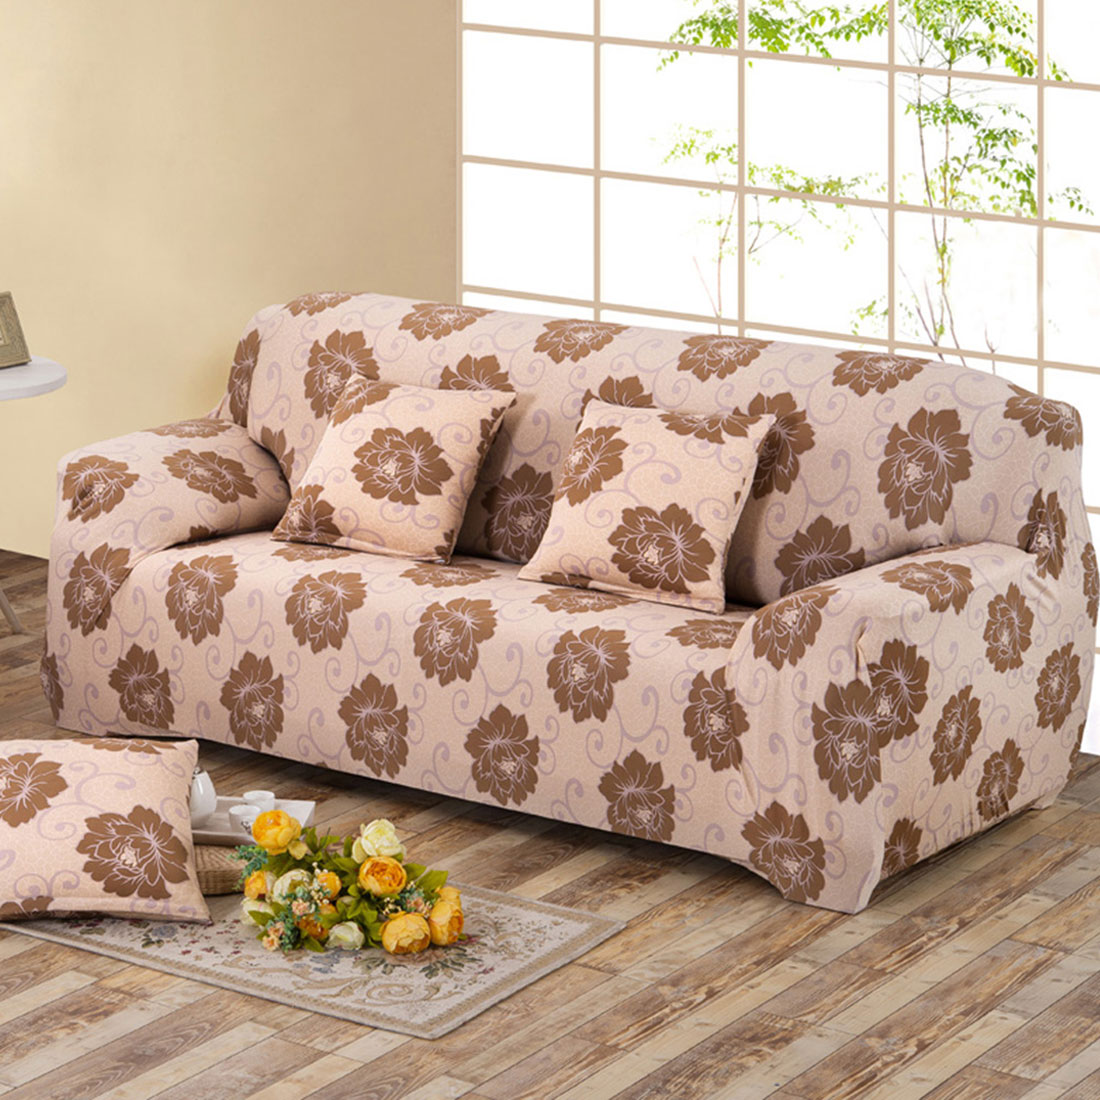 Uxcell Piccocasa Household Polyester Flower Pattern